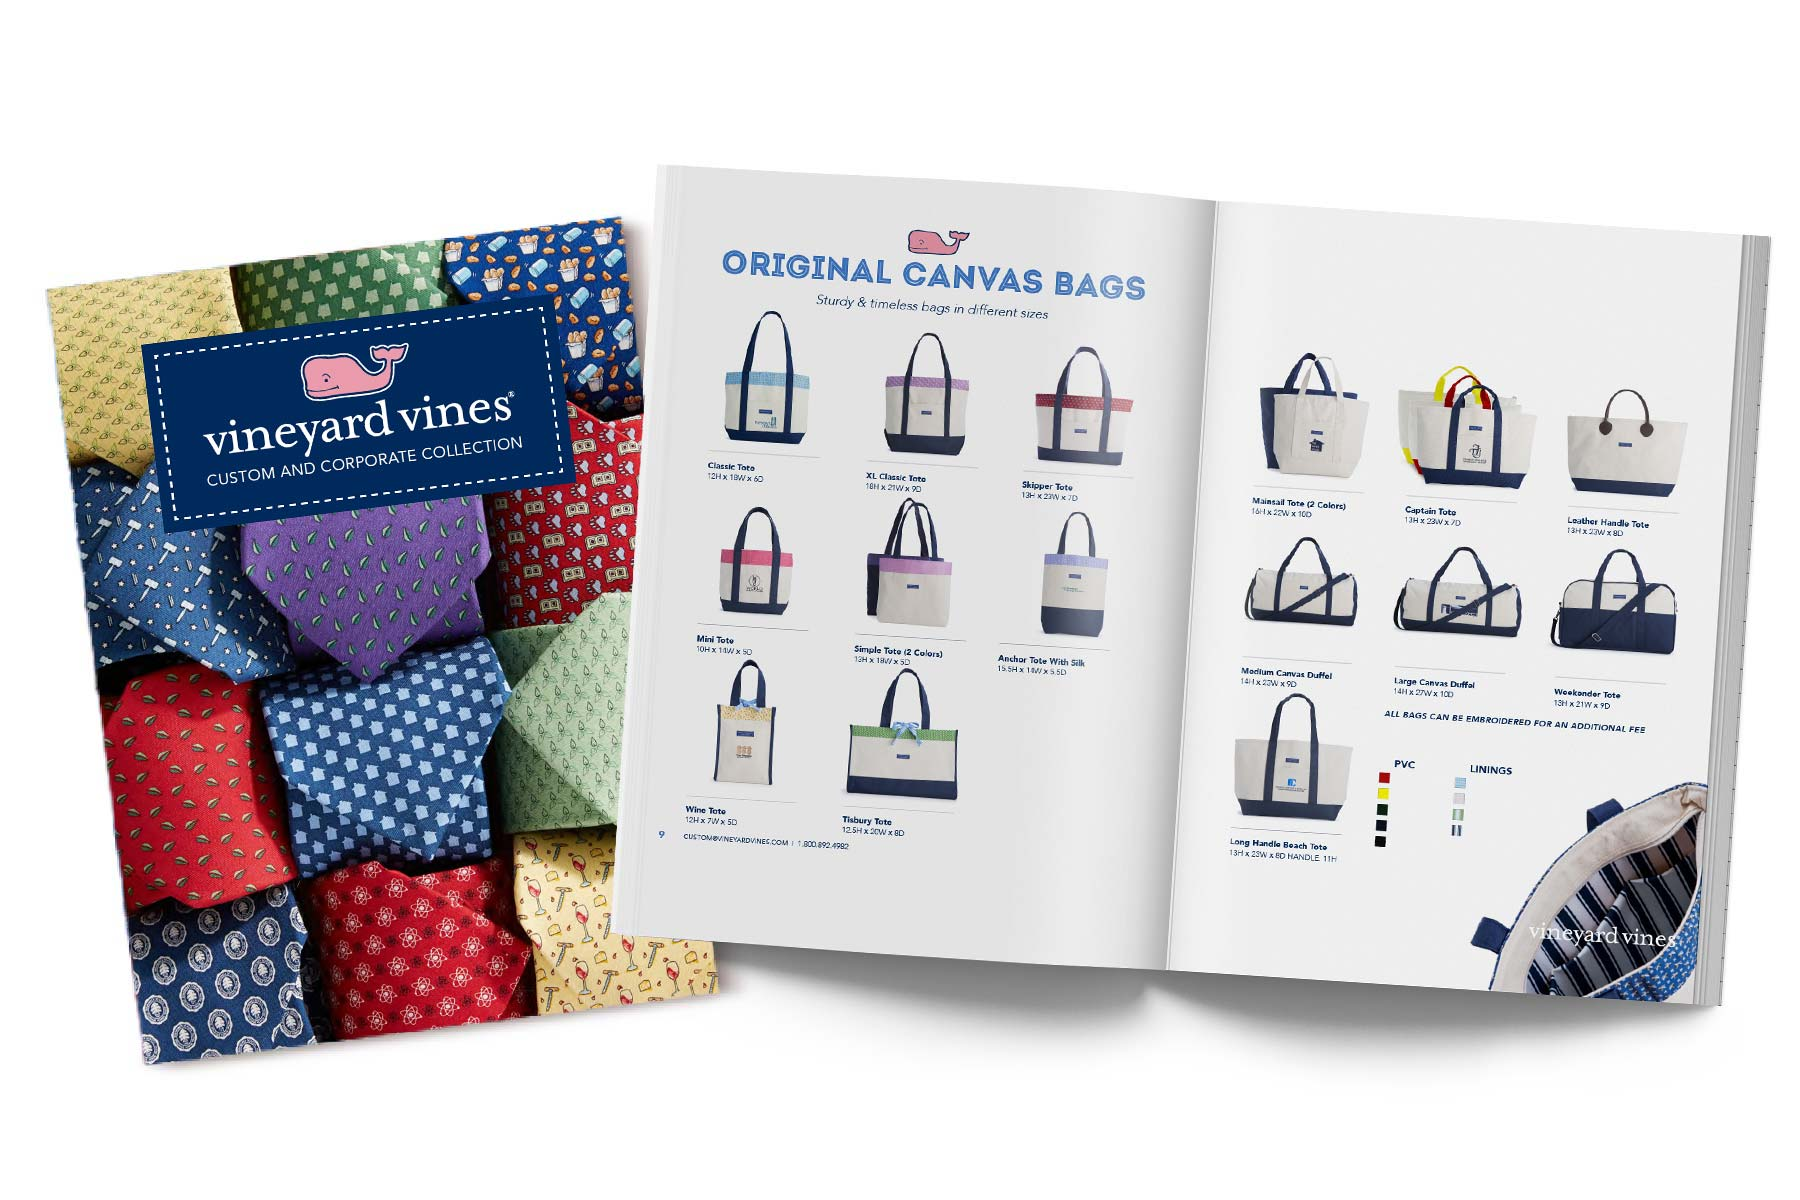 8cc5f377b vineyard vines Custom and Corporate Collection catalog.